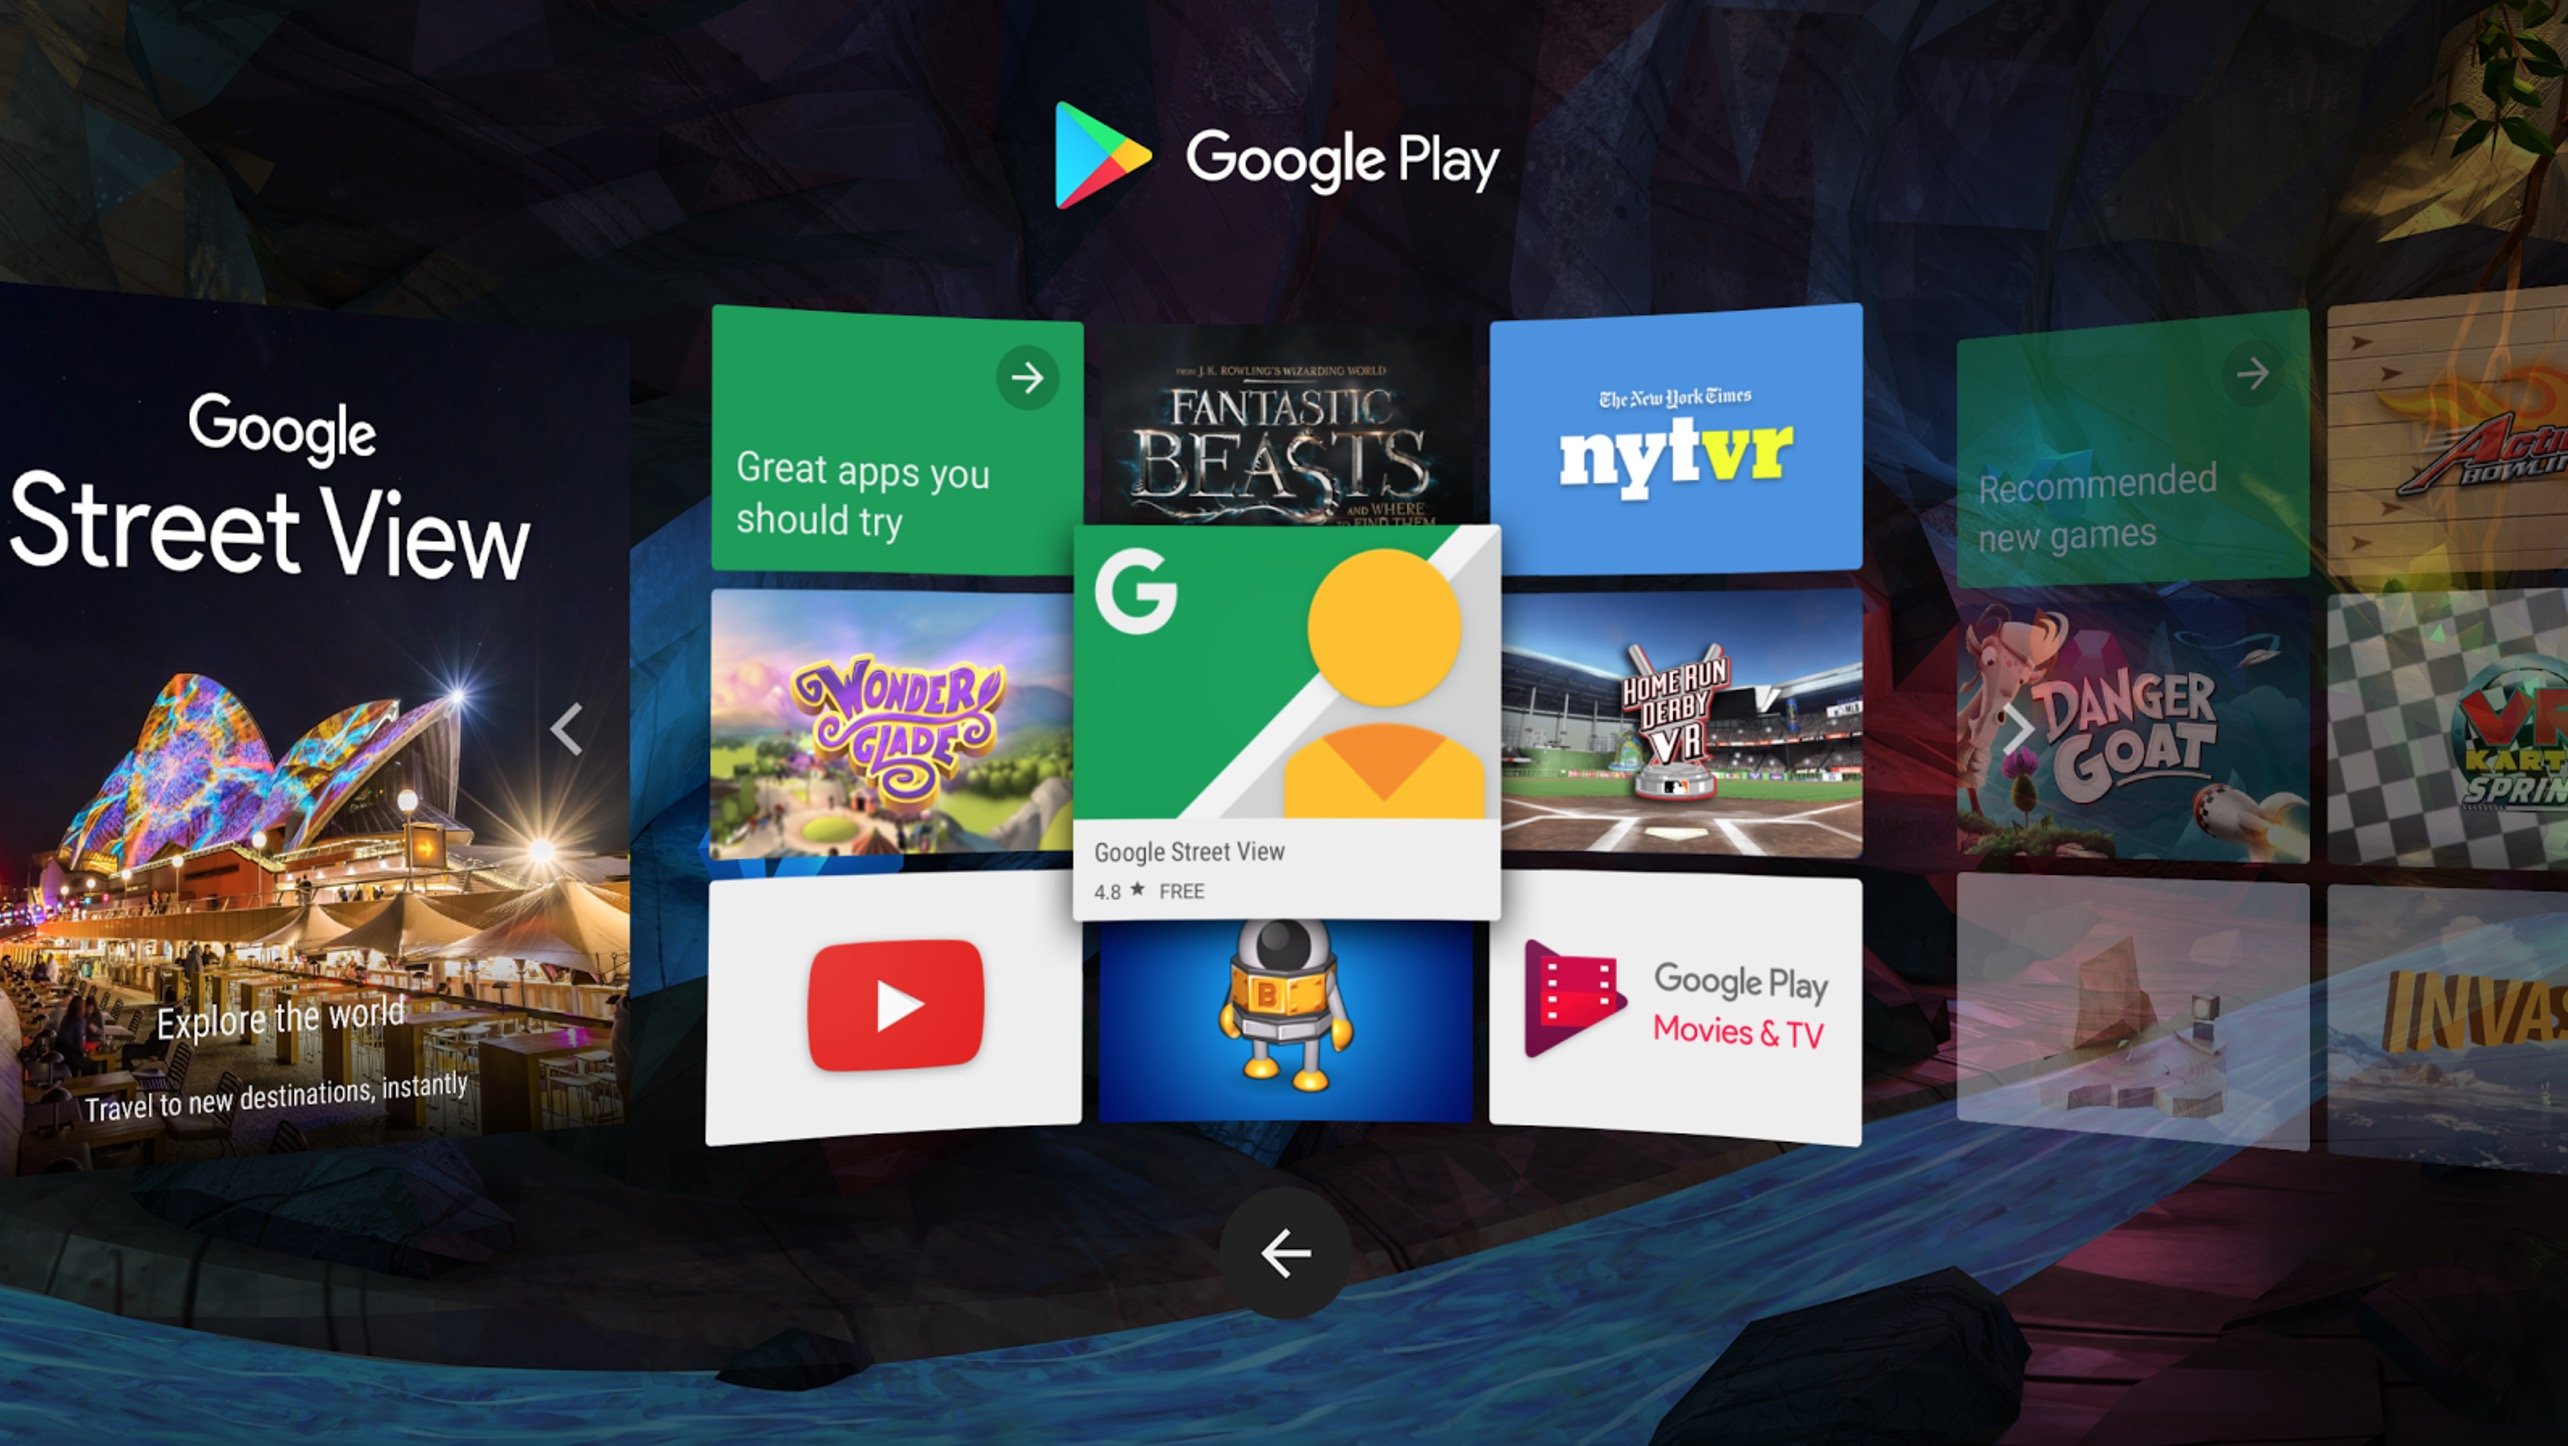 how to choose an app to play on daydream